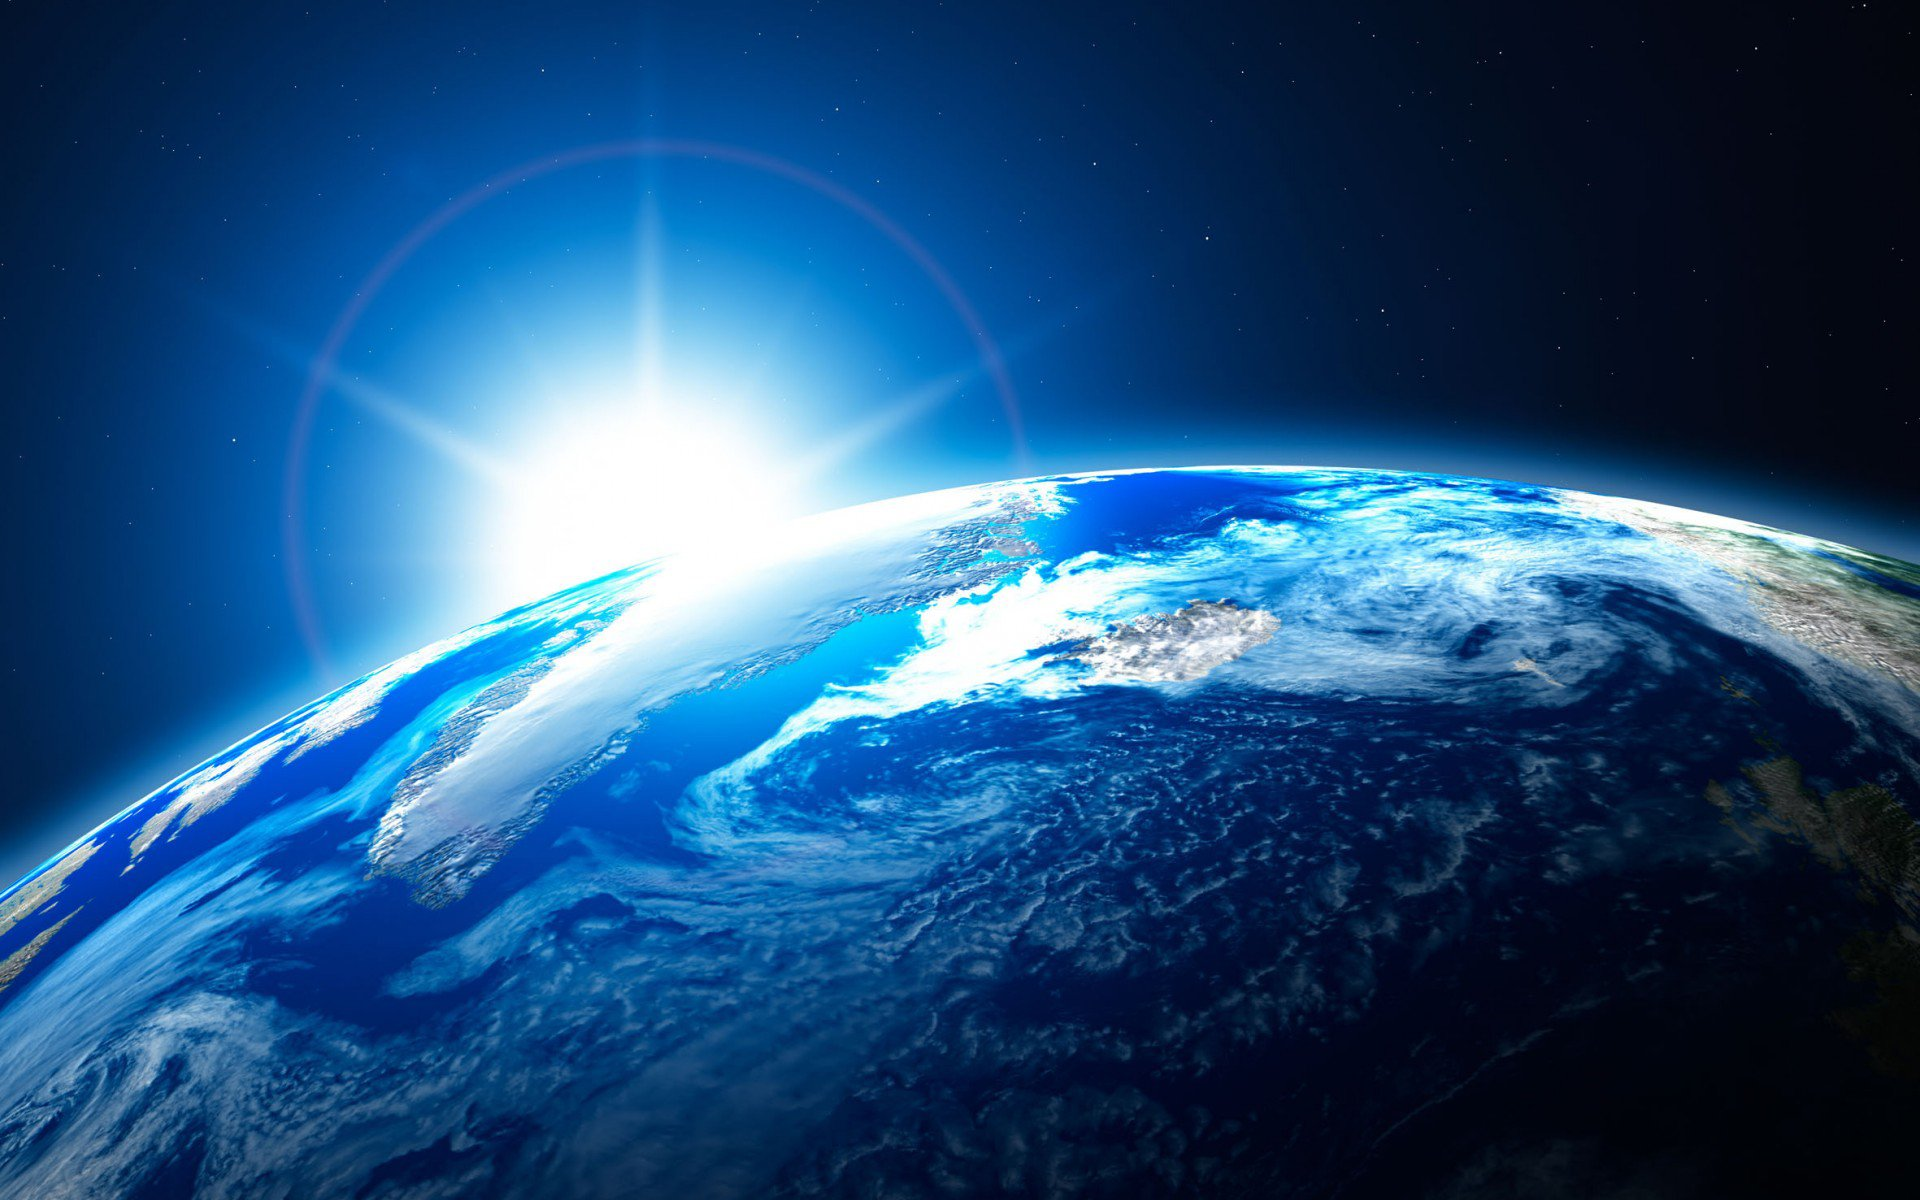 30 Gorgeous HD wallpapers of planet Earth   AndroidGuys